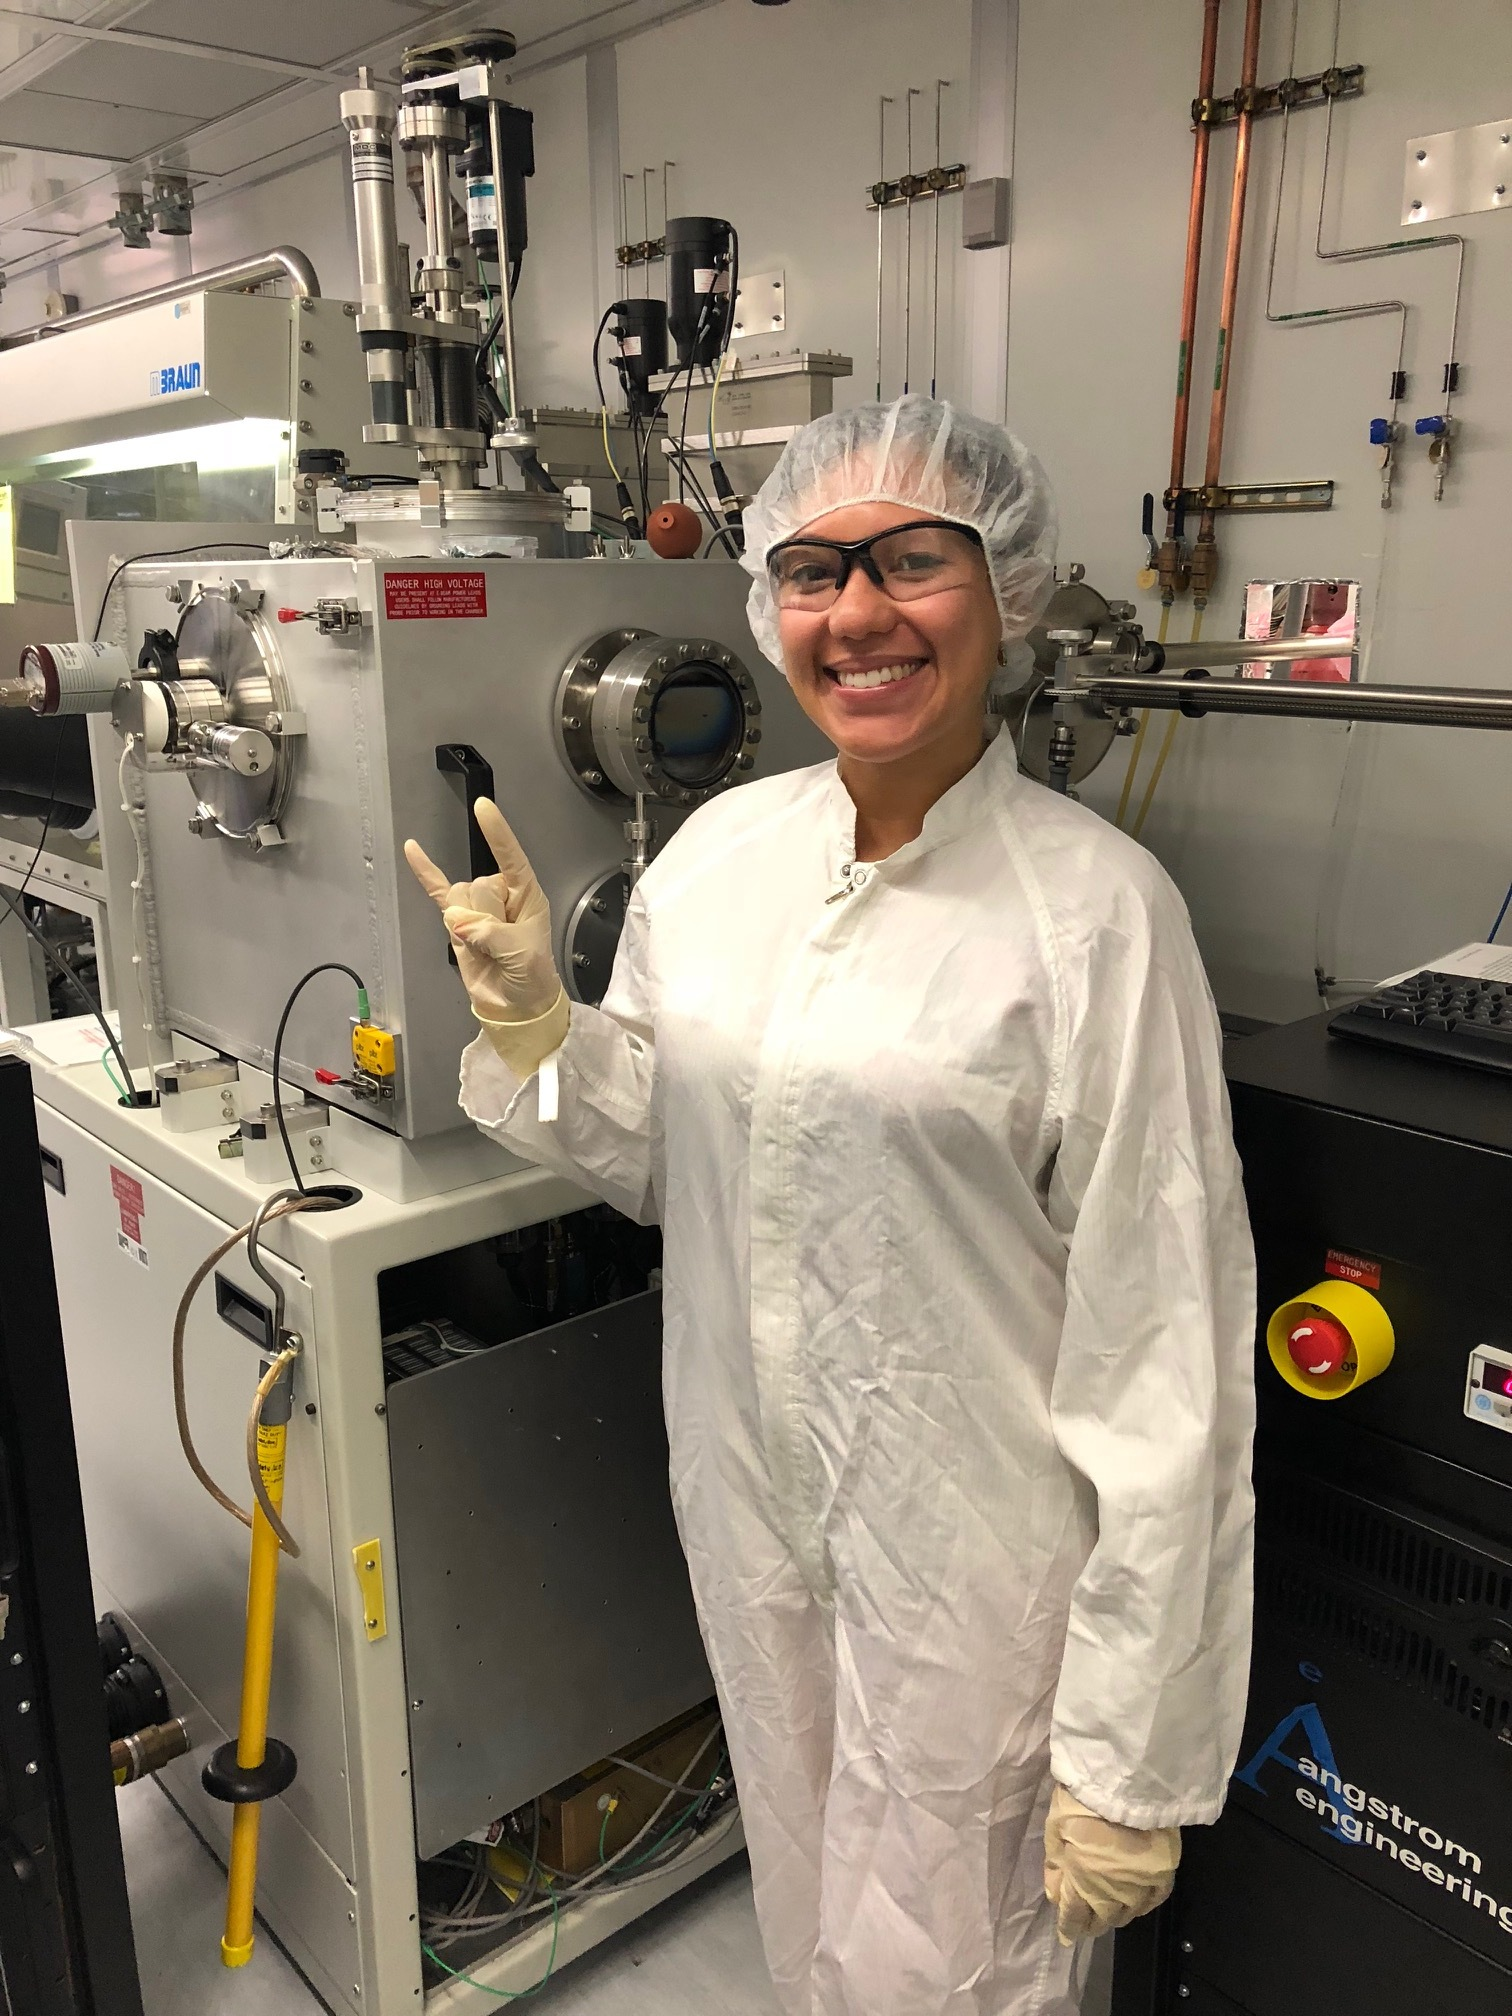 Wendilyn Ilund, a previous RET at UT, stands in her summer laboratory. She is wearing personal protective gear including safety goggles and gloves.